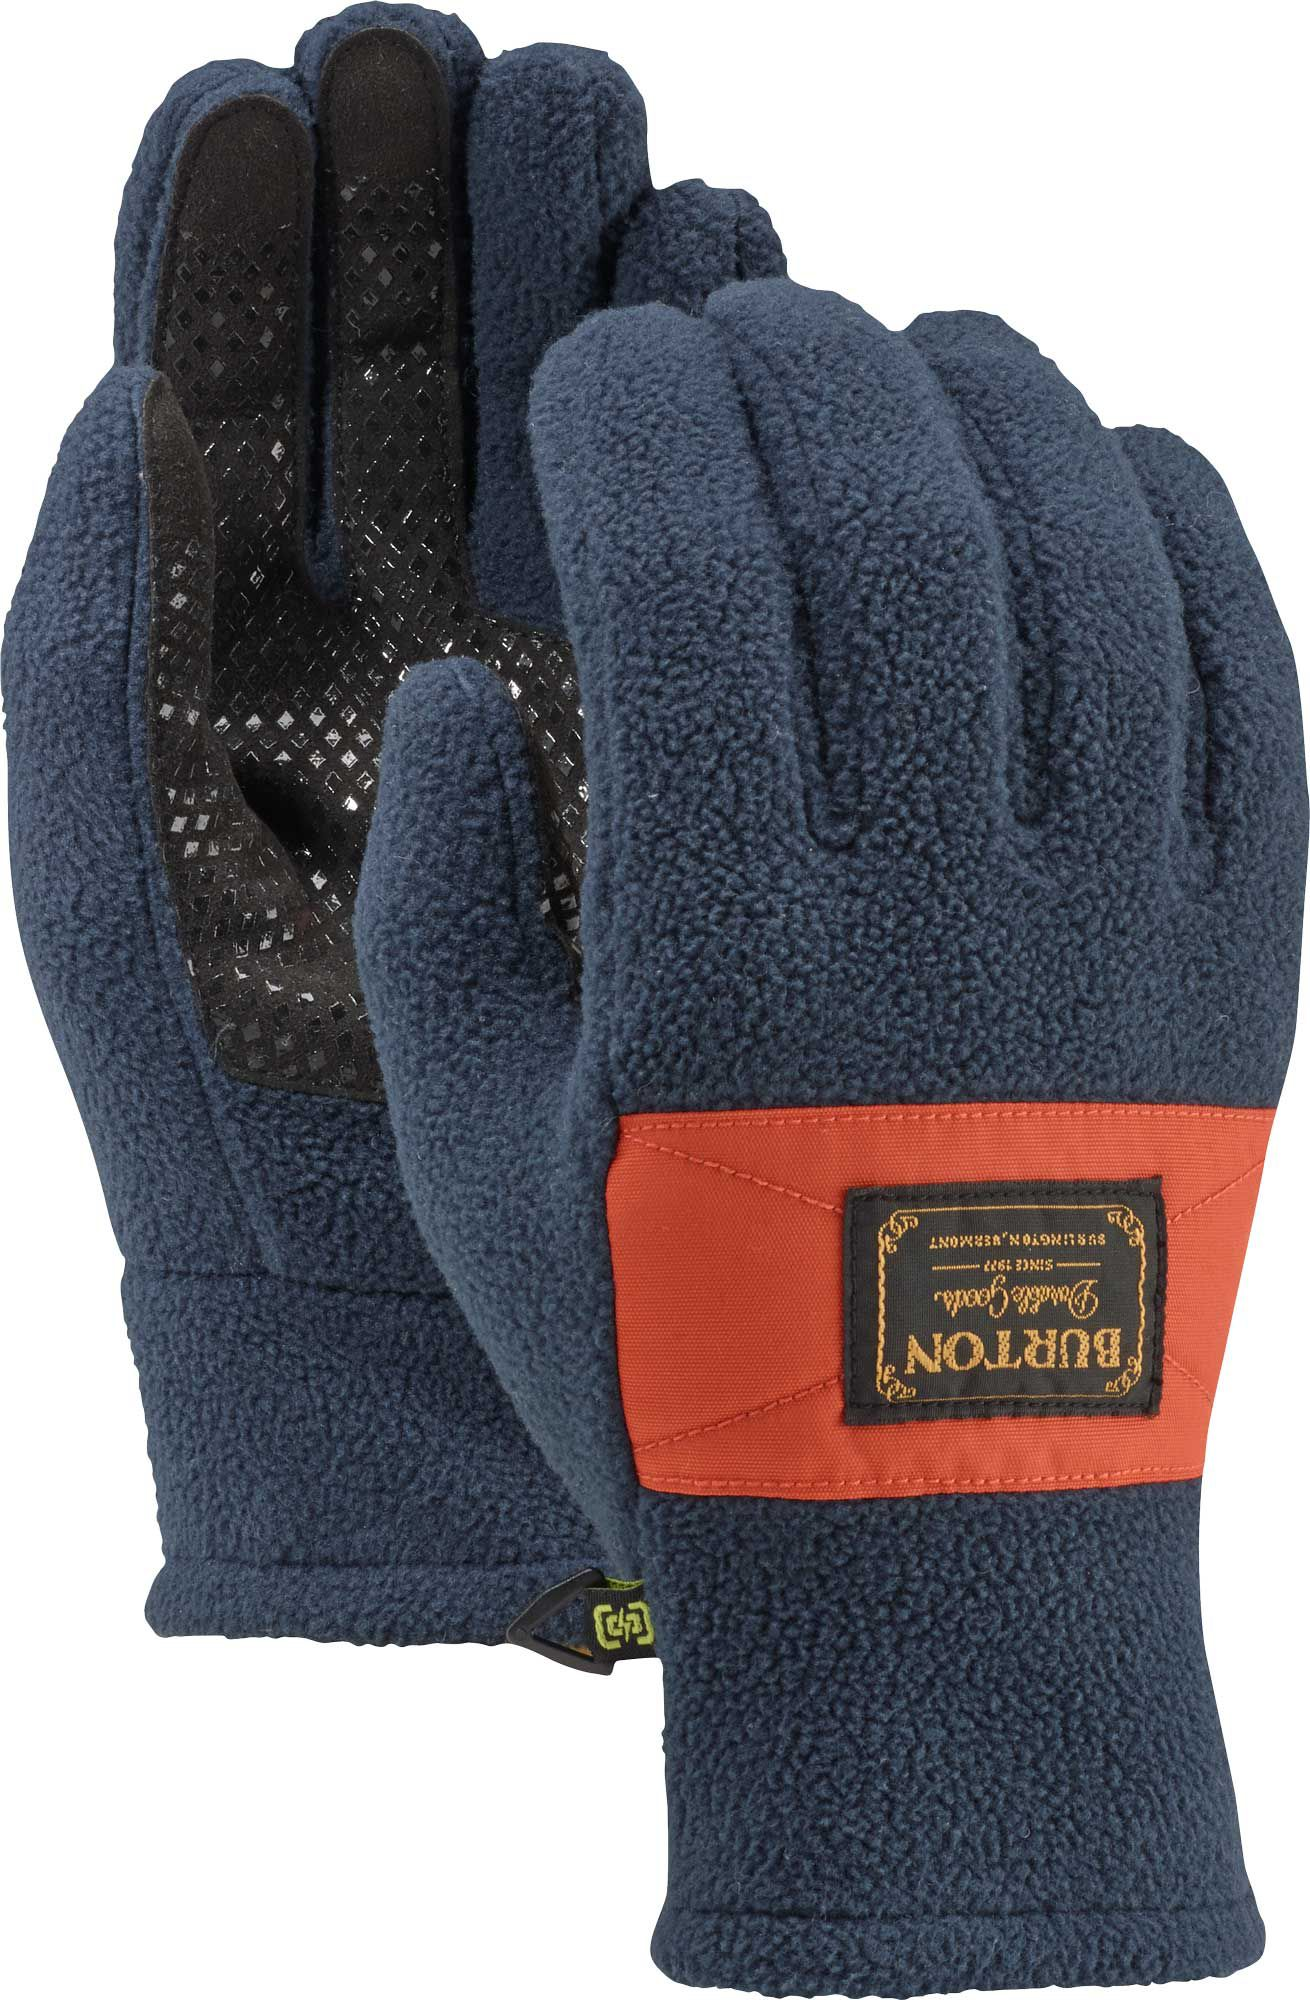 Mens fleece gloves xxl - Noimagefound